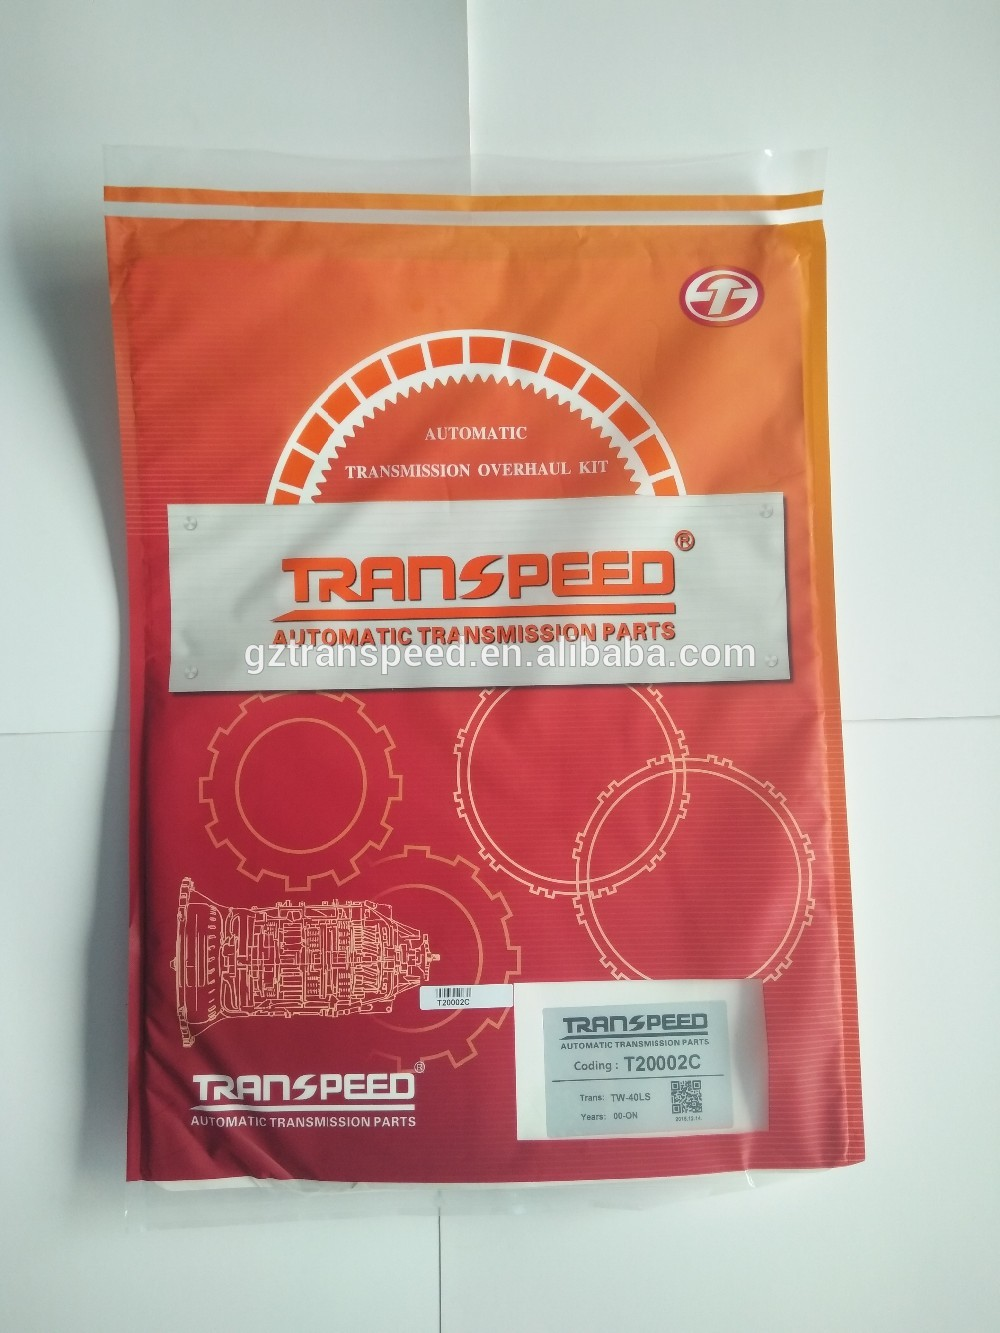 Transpeed TW-40LS overhaul kit T20002C auto seal kit repair gasket kit Featured Image